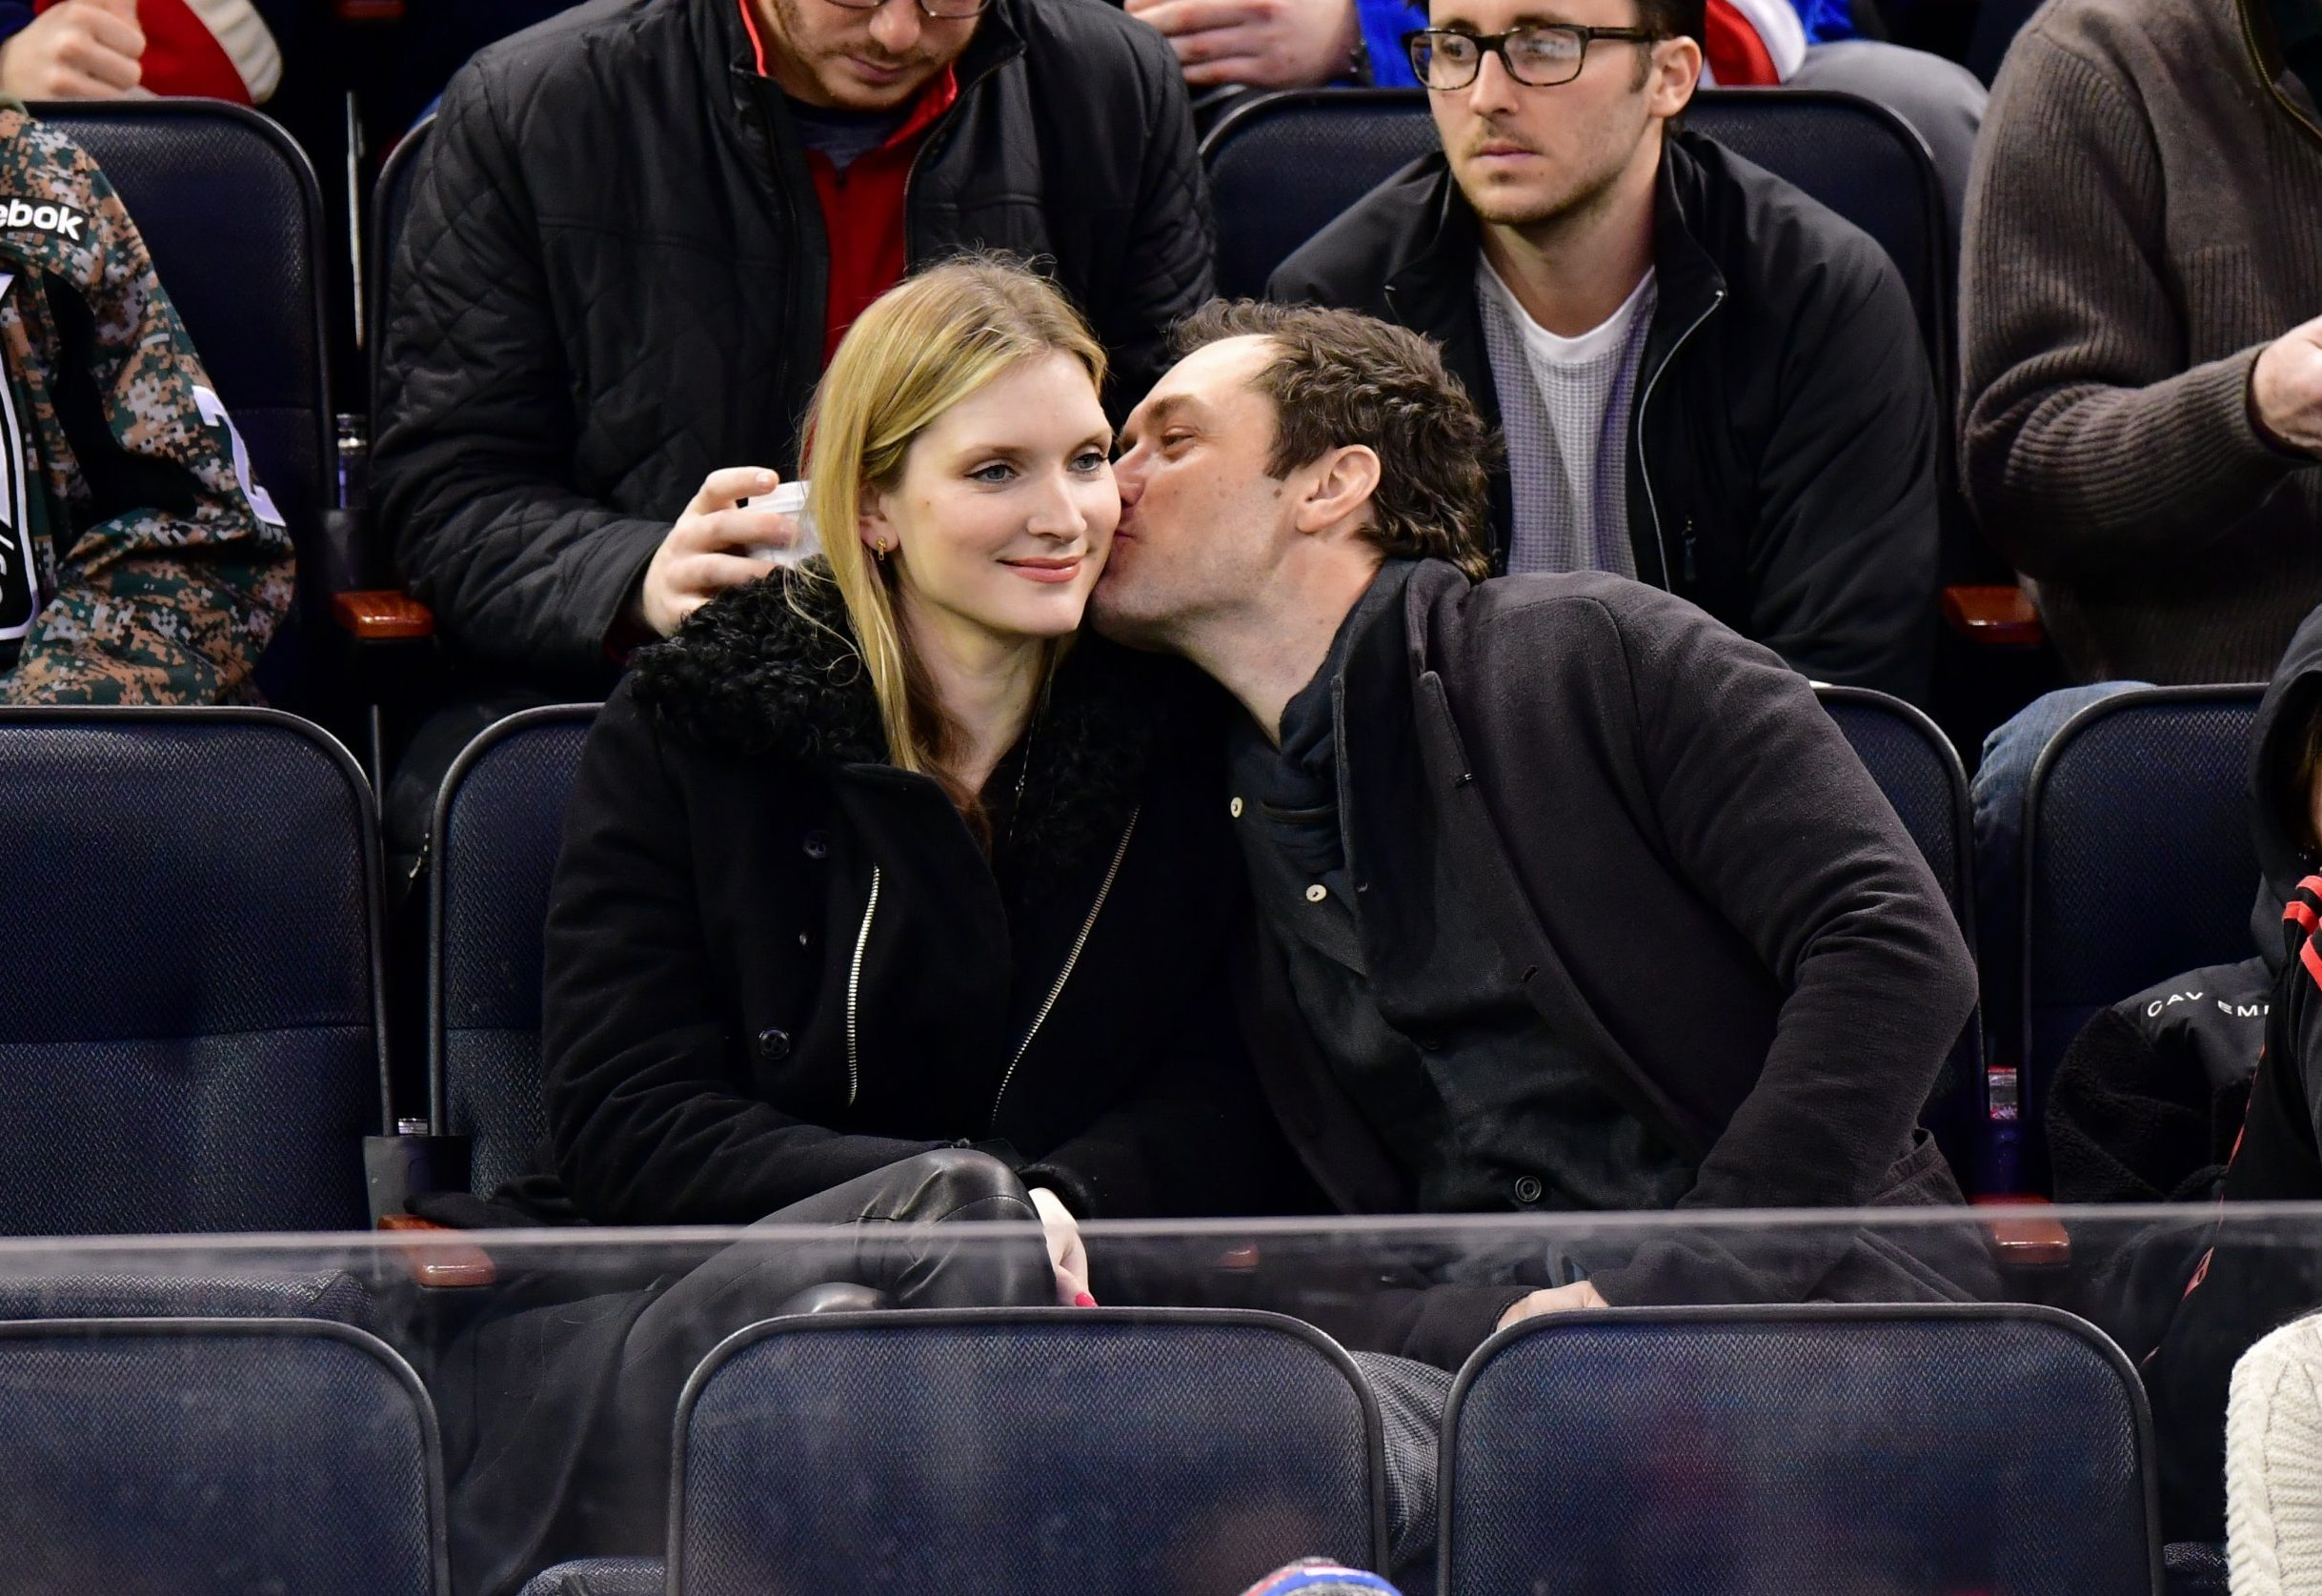 Mandatory Credit: Photo by Jd Images/REX/Shutterstock (7582848ag) Phillipa Coan and Jude Law New Jersey Devils v New York Rangers, NHL ice hockey, Madison Square Garden, New York, USA - 18 Dec 2016